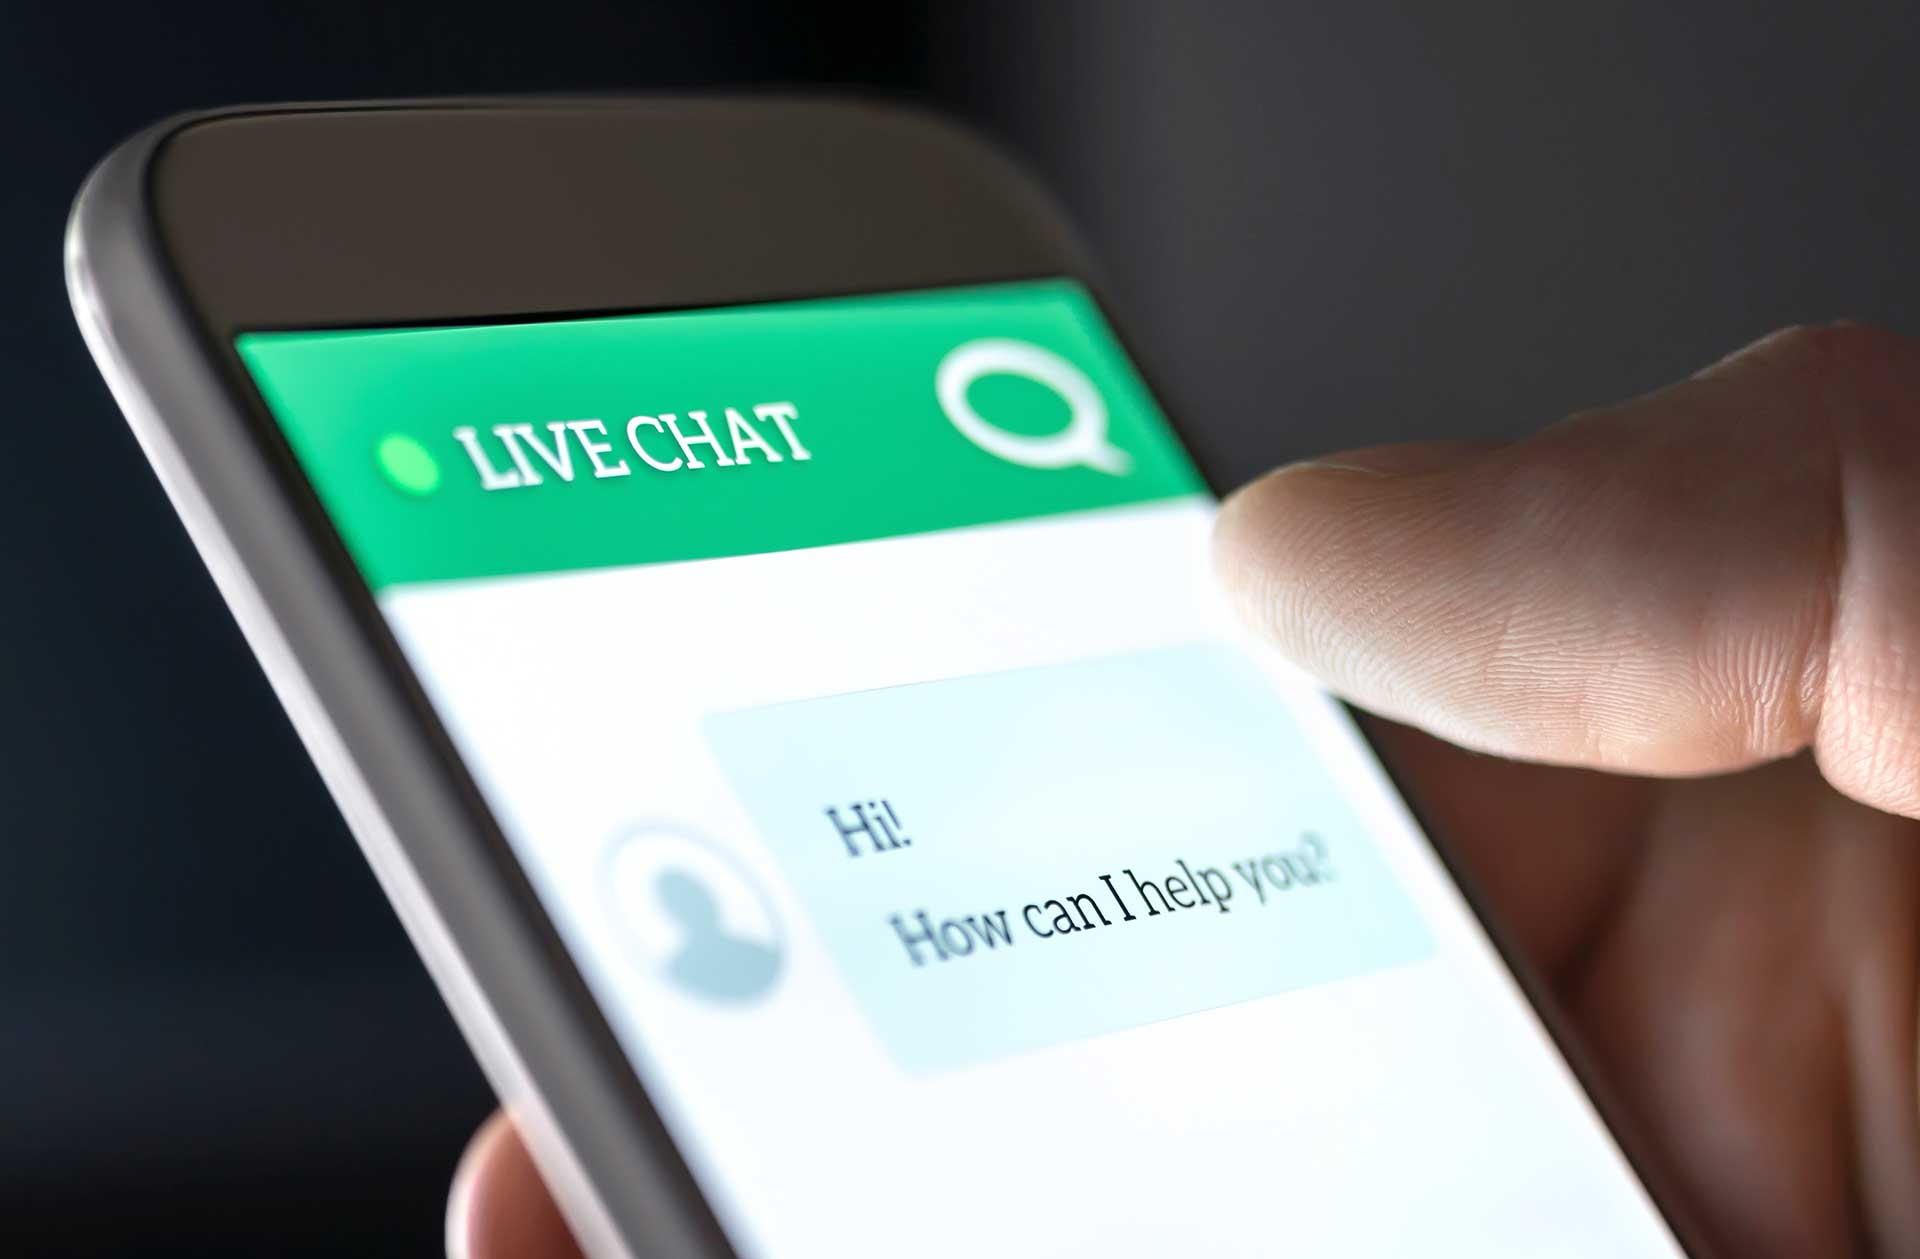 chat_bot_on_phone